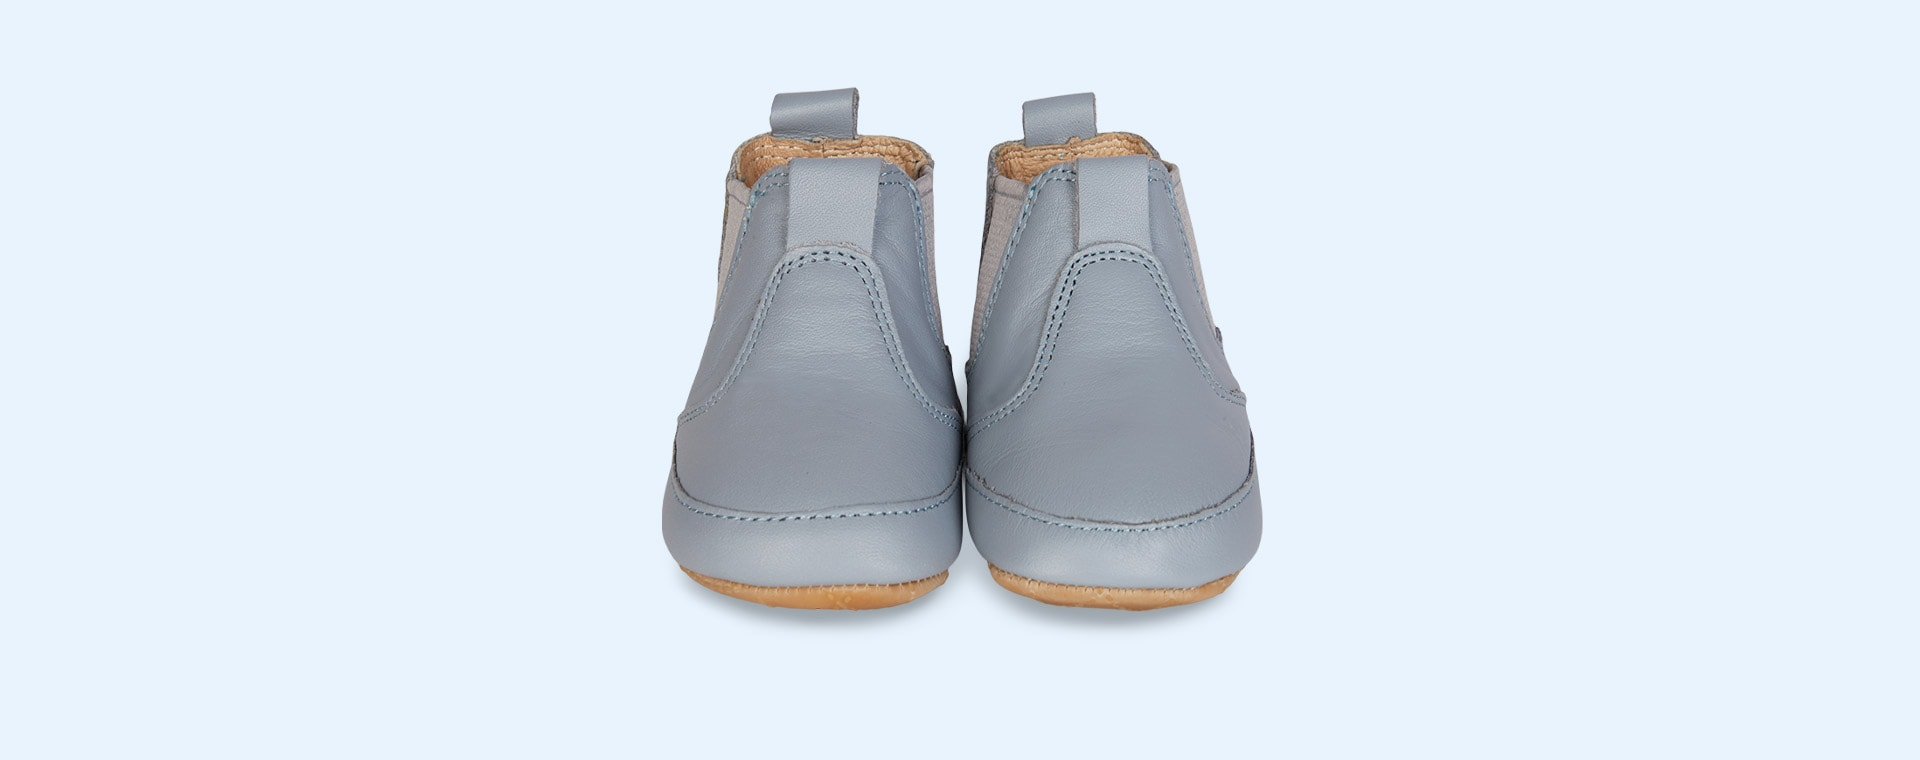 Dusty Blue old soles Bambini Local Soft sole Boot